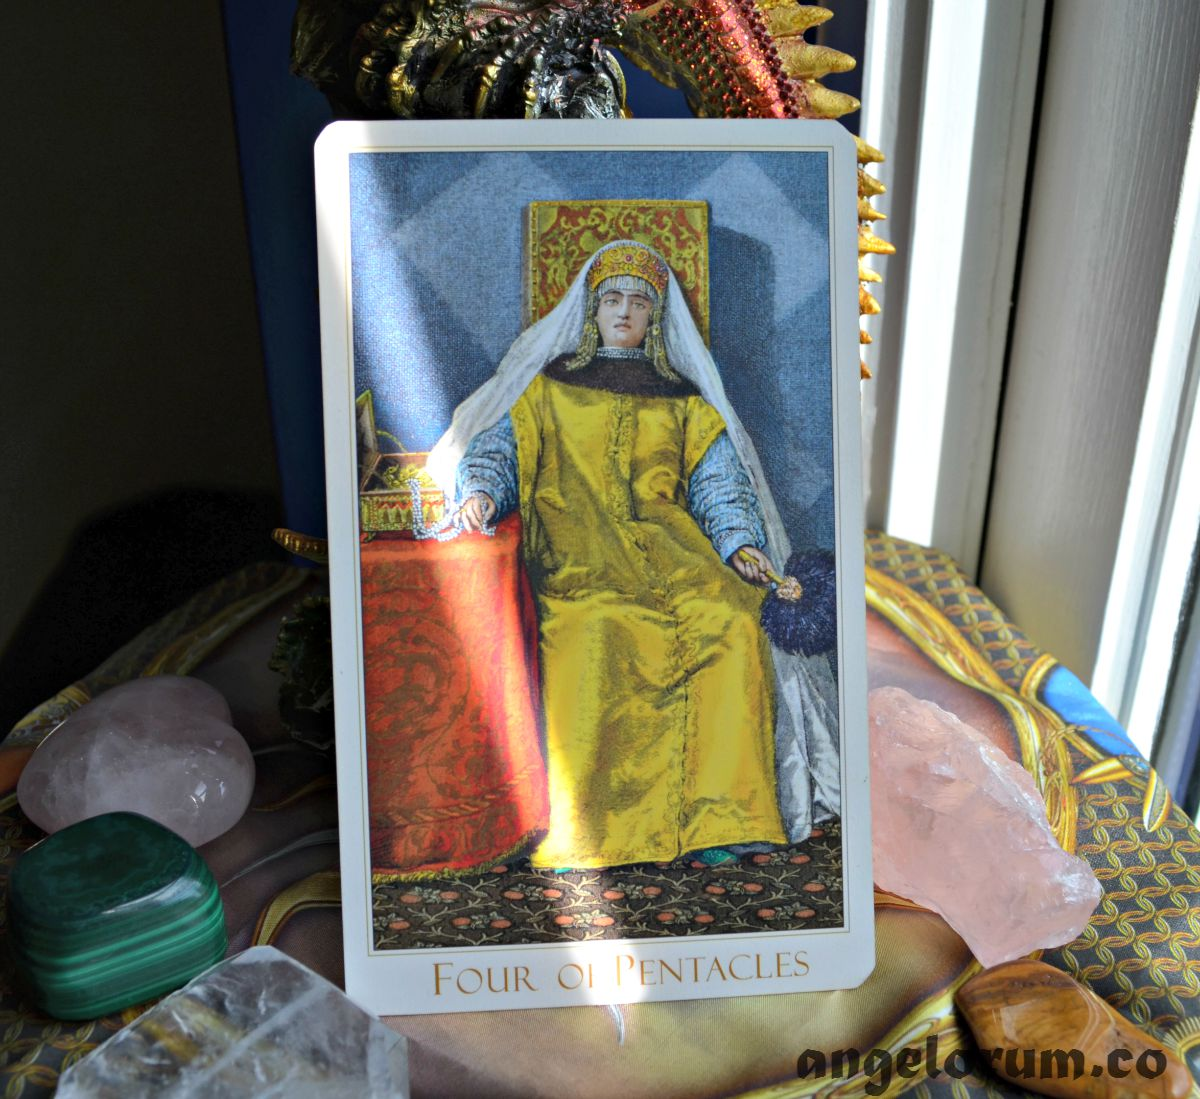 4 of Pentacles Victorian Romantic Tarot